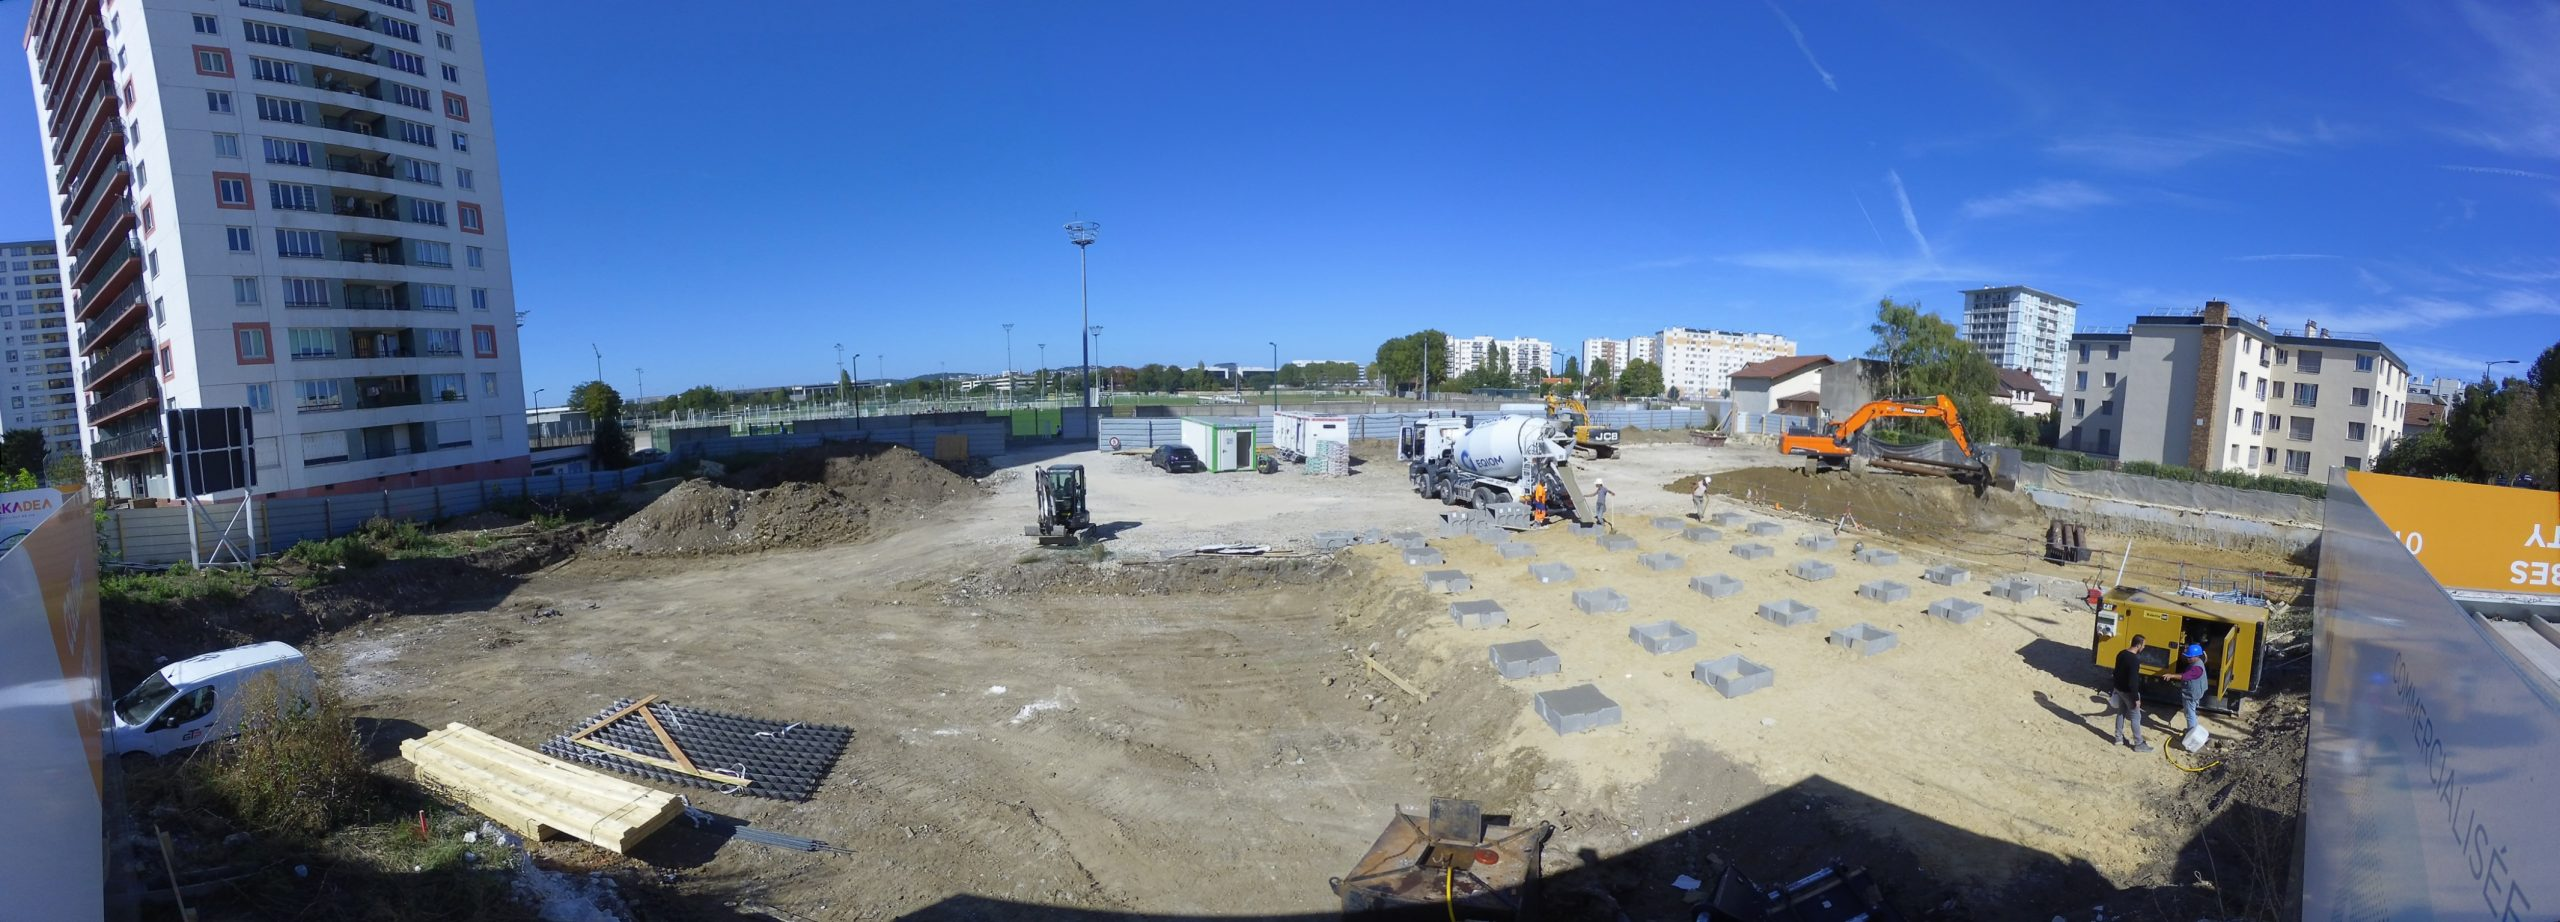 Timelapse projet Icade Colombes